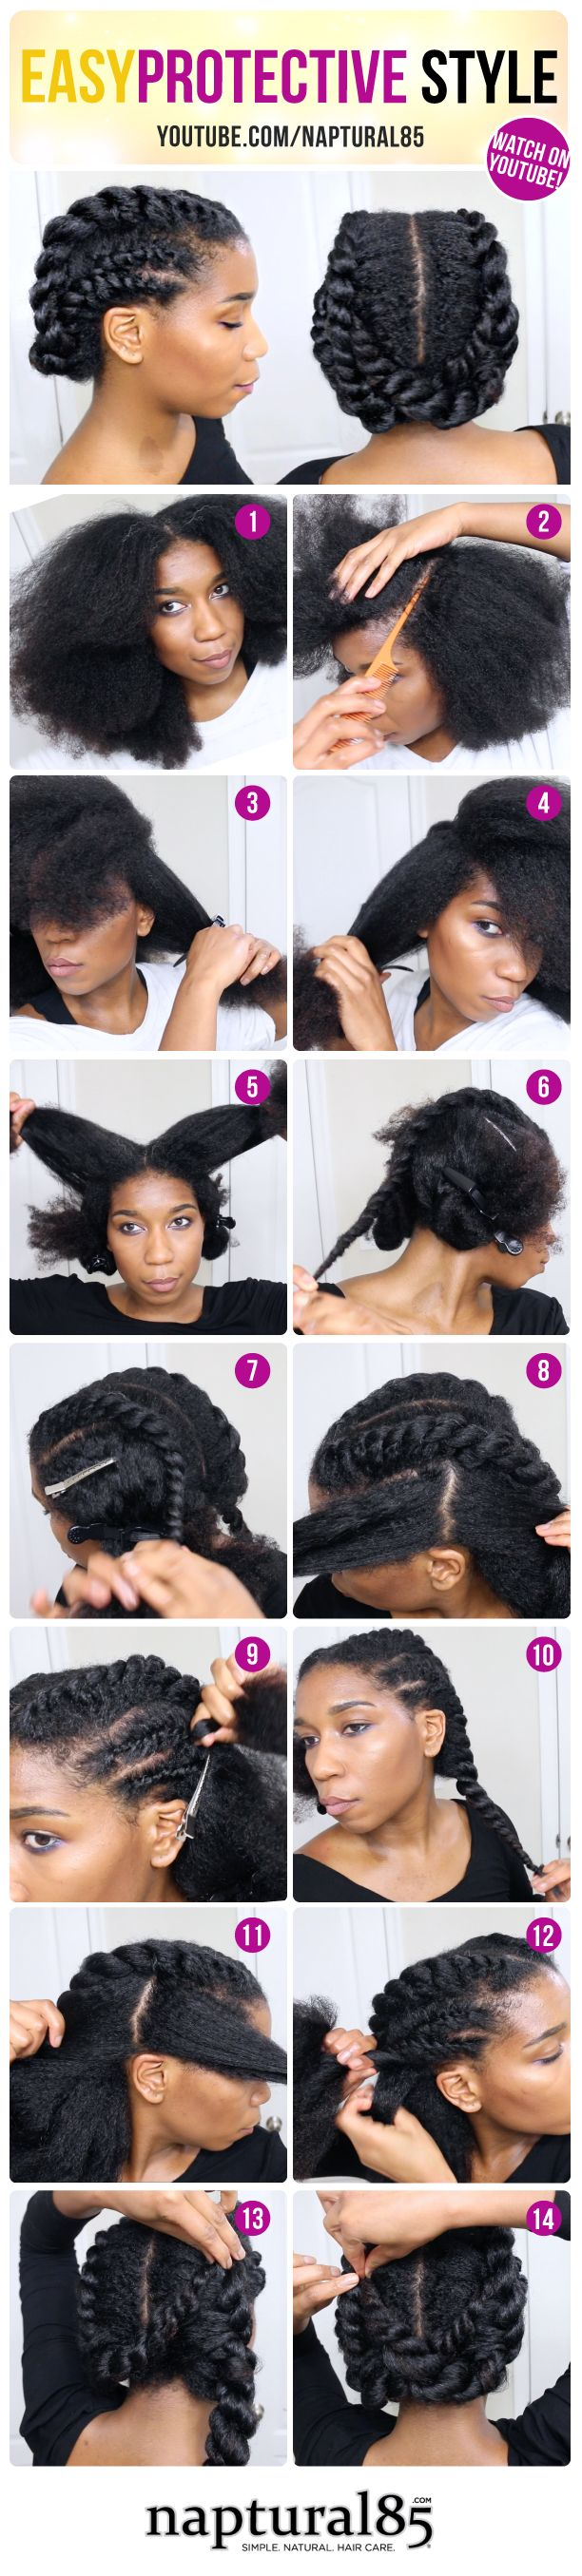 Naptural85 - Trying this hairstyle ASAP|ManeGuru.com| Natural Hairstyles: Bantu Knots, Afros, Twist outs, Protective Styles | Visit ManeGuru.com for more!